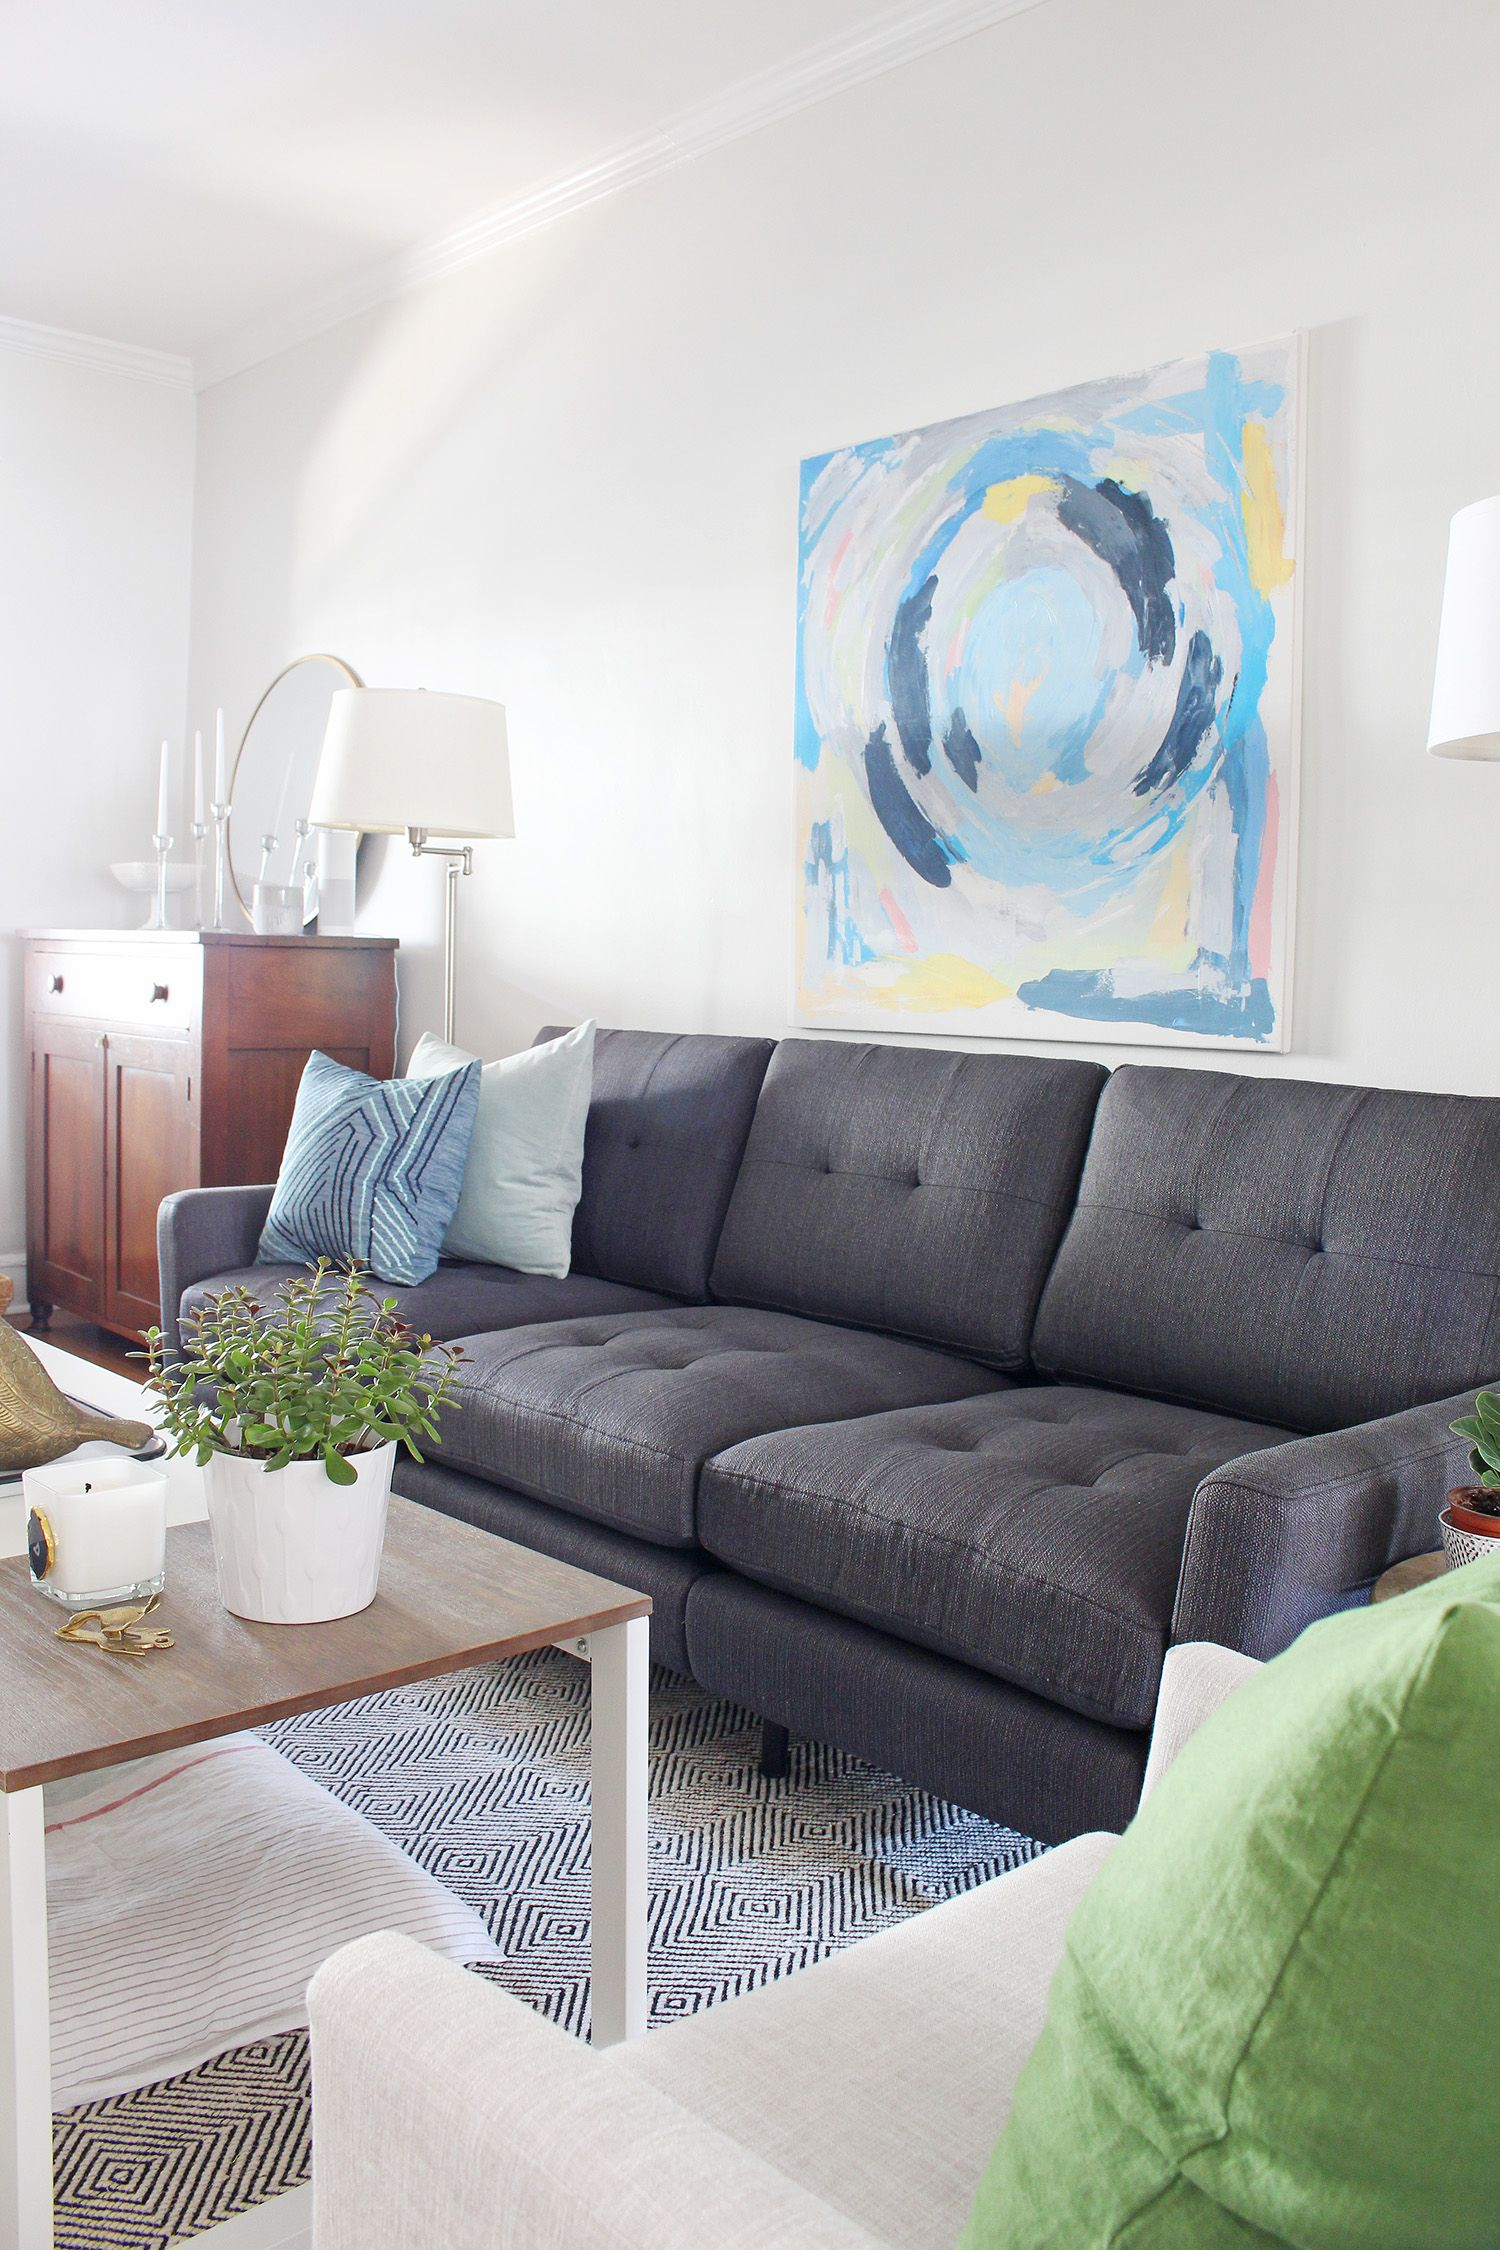 A mid century modern eclectic living room mixes new and old to create a cozy space the neutral charcoal gray sofa has pops of color thanks to the blue